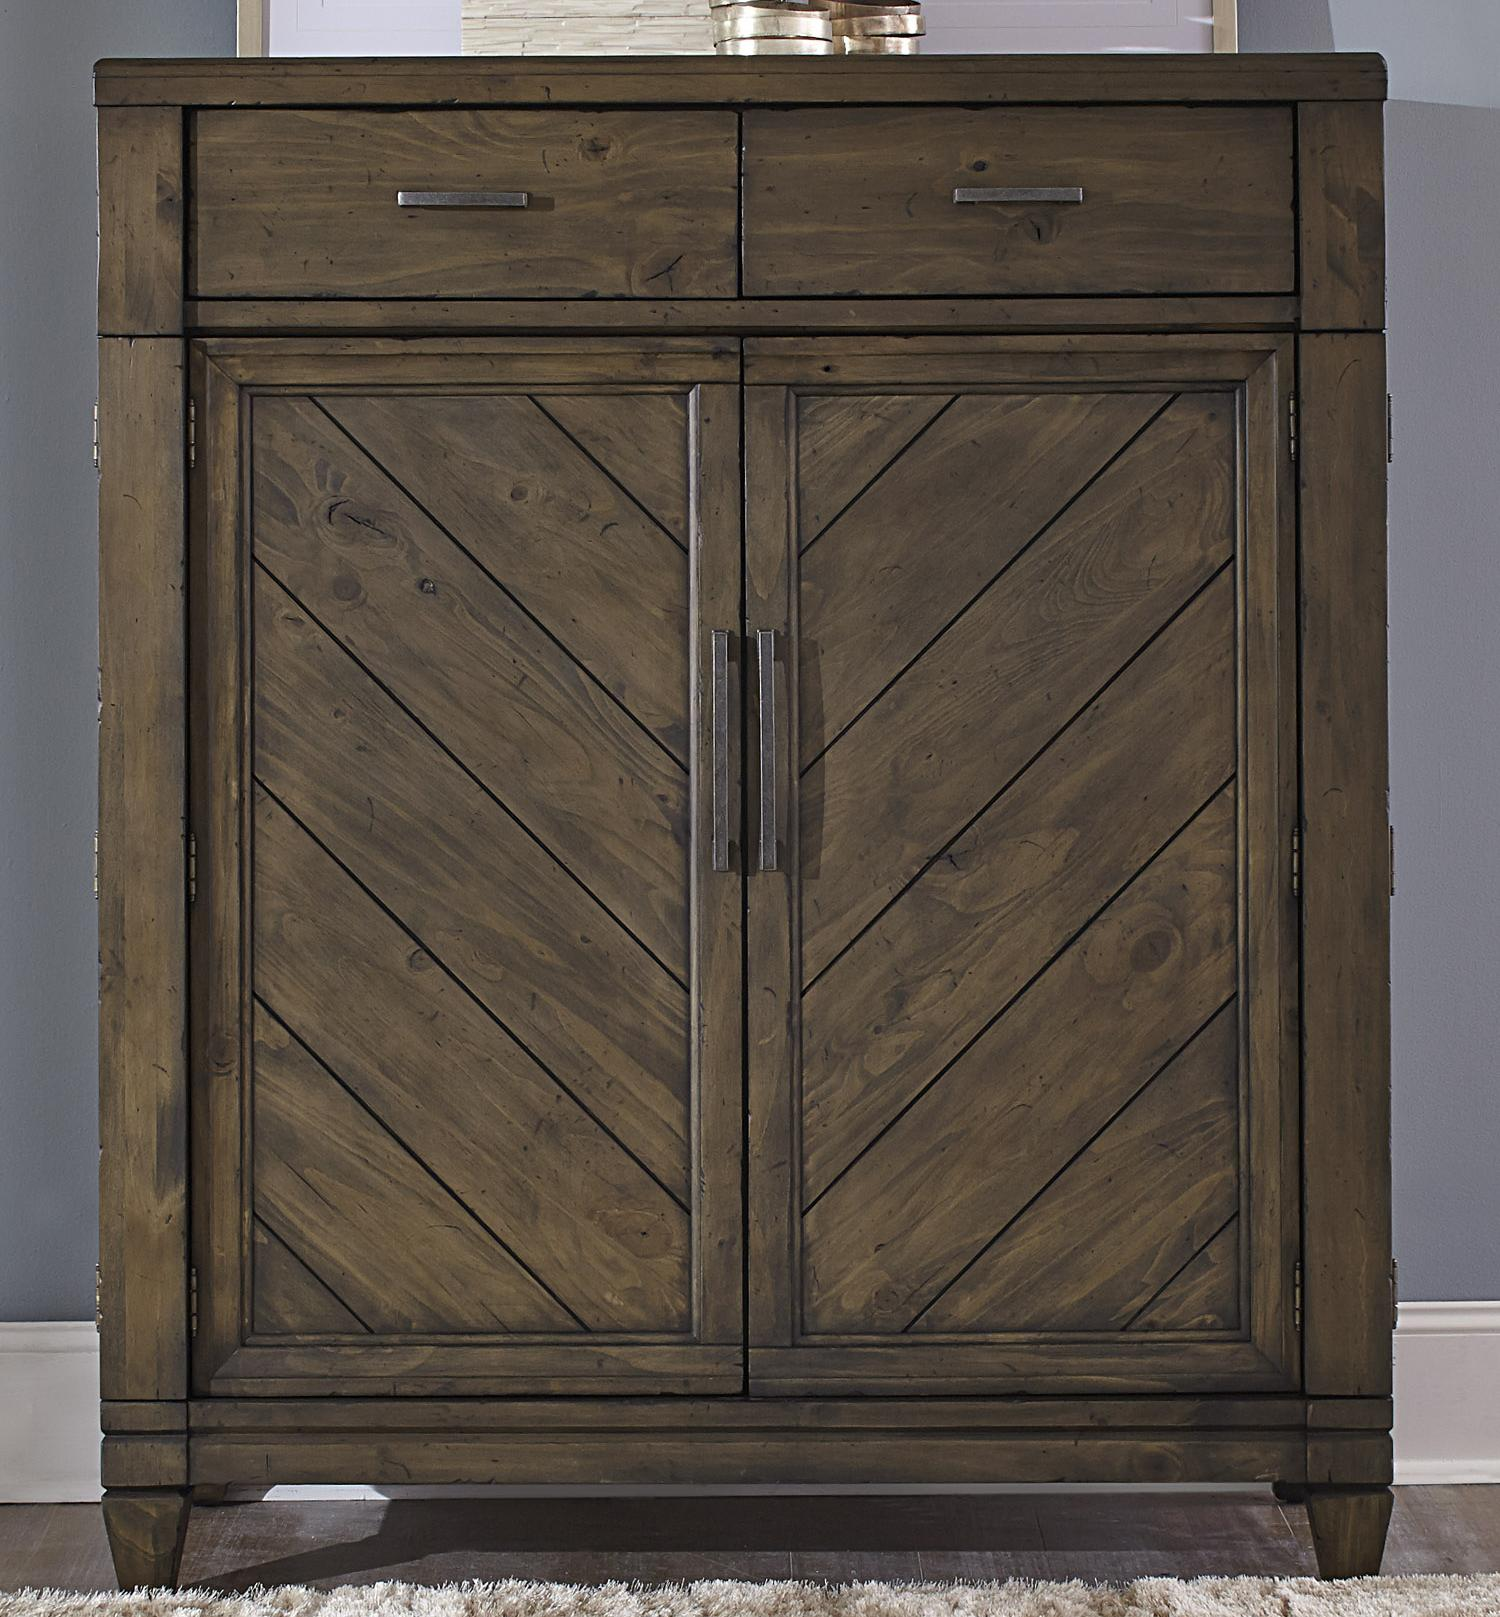 admirable concept doors classic for franklin bedroom your home tall dresser ben with